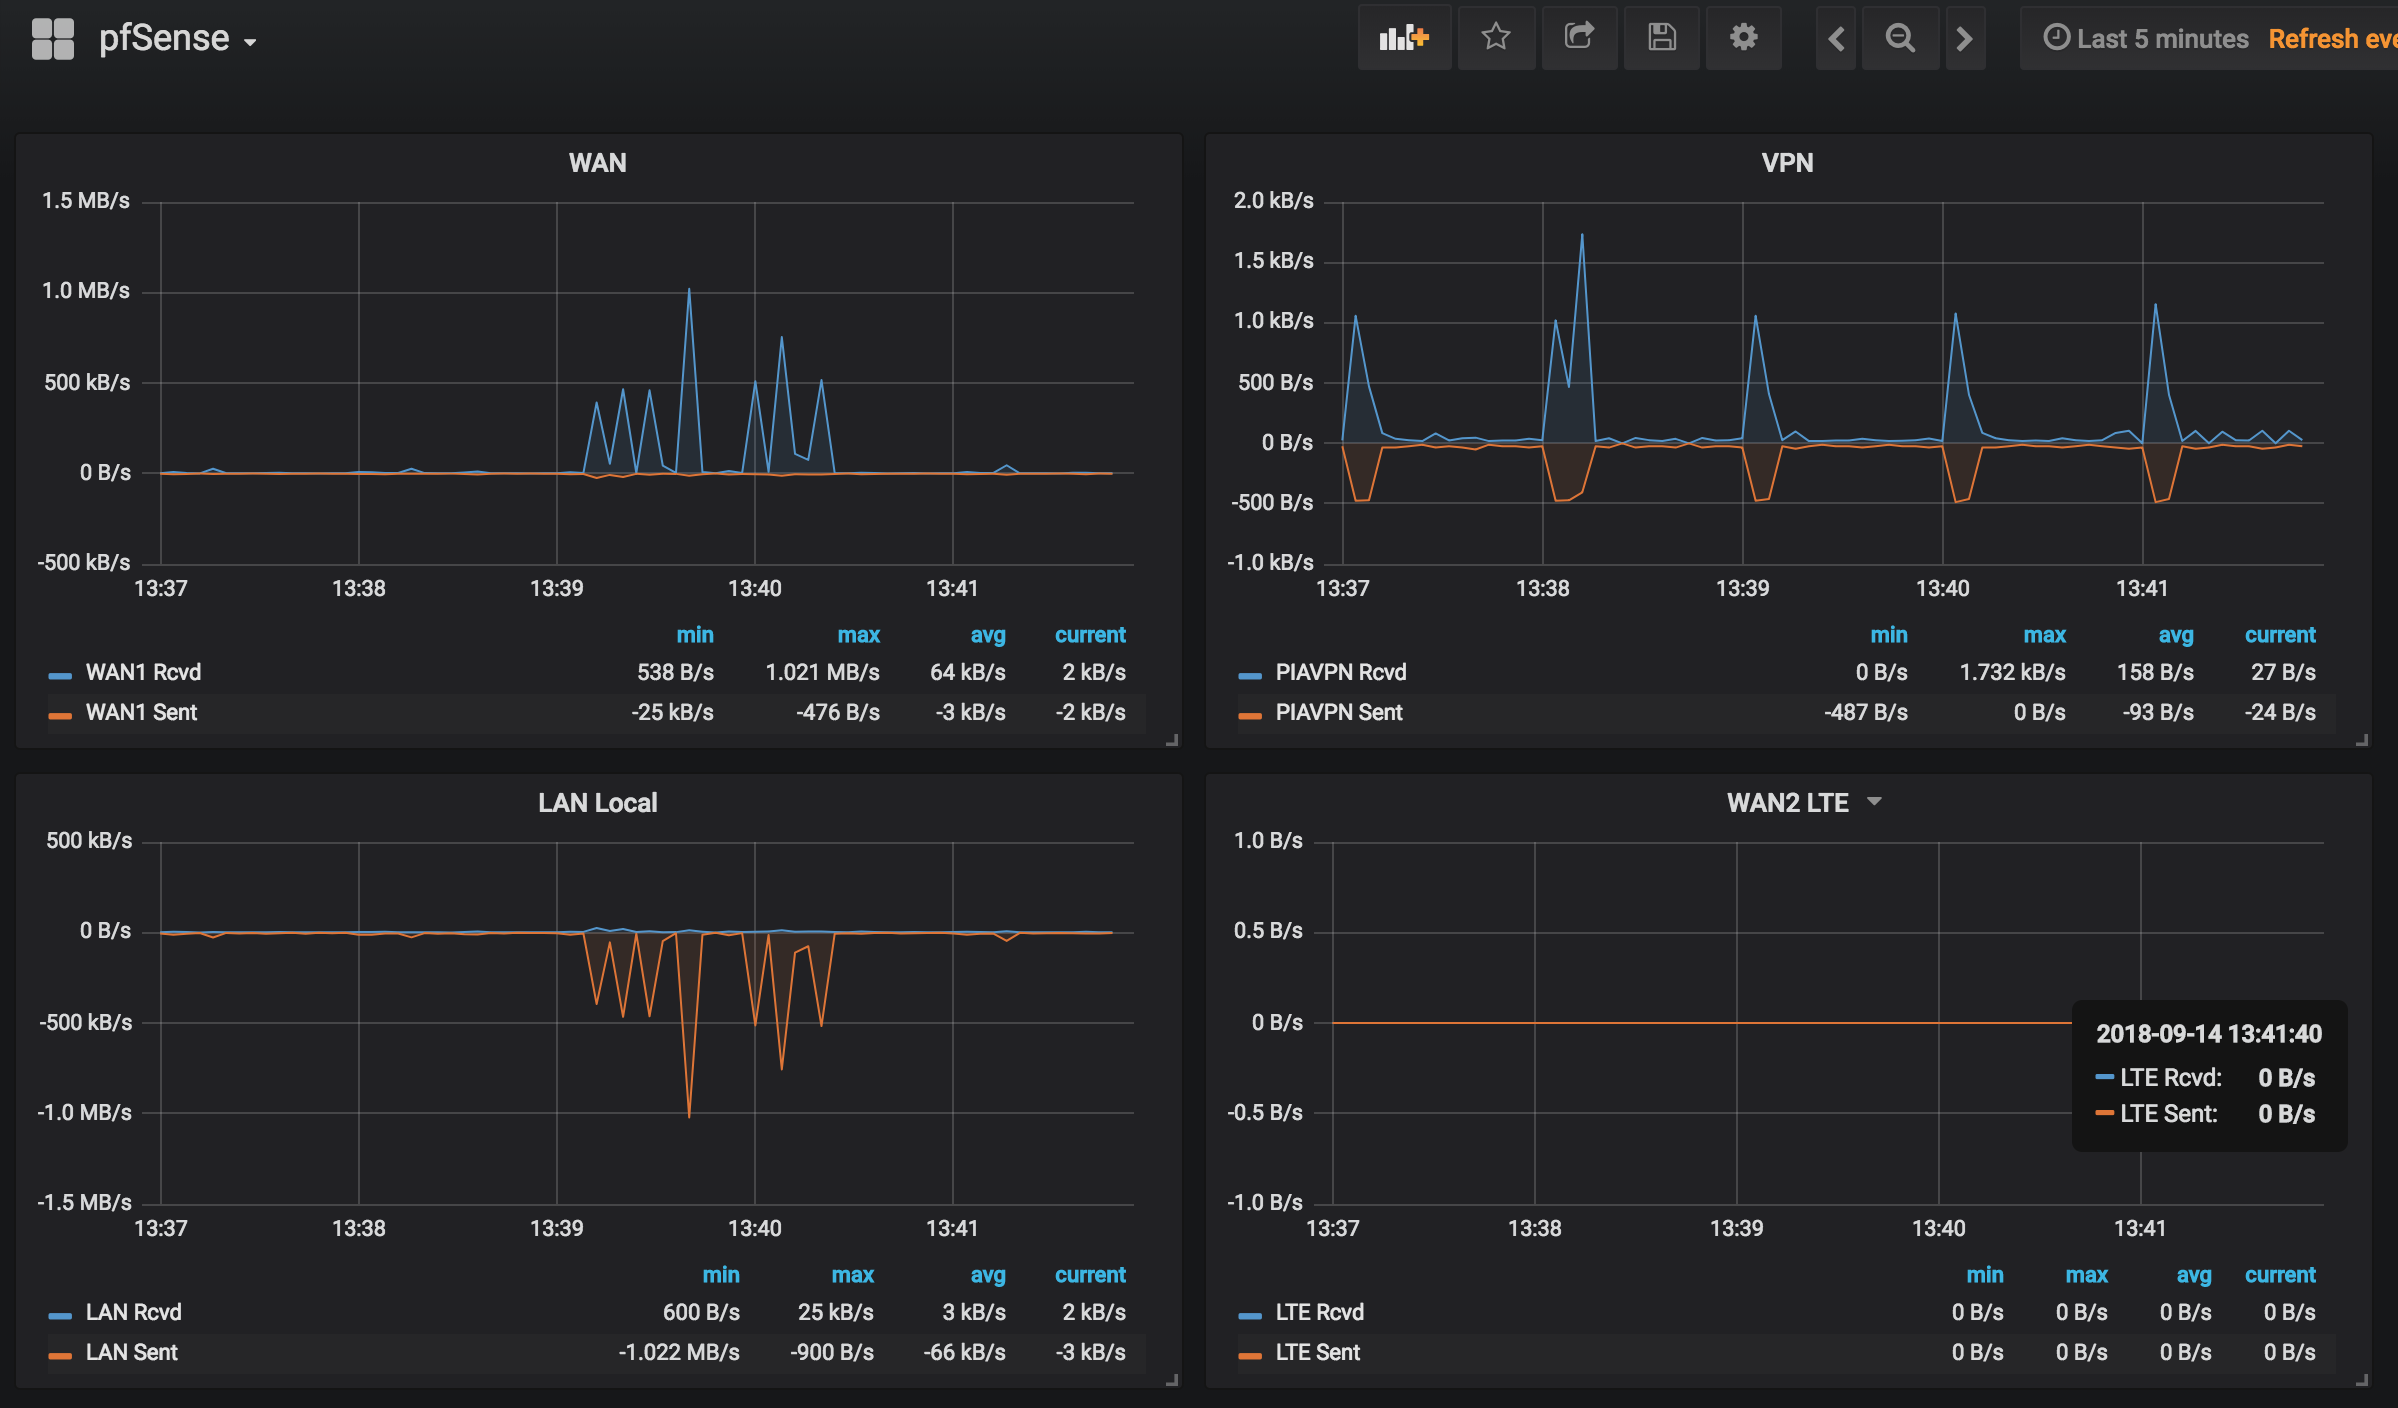 pfSense graphs in Grafana | Chris Bergeron